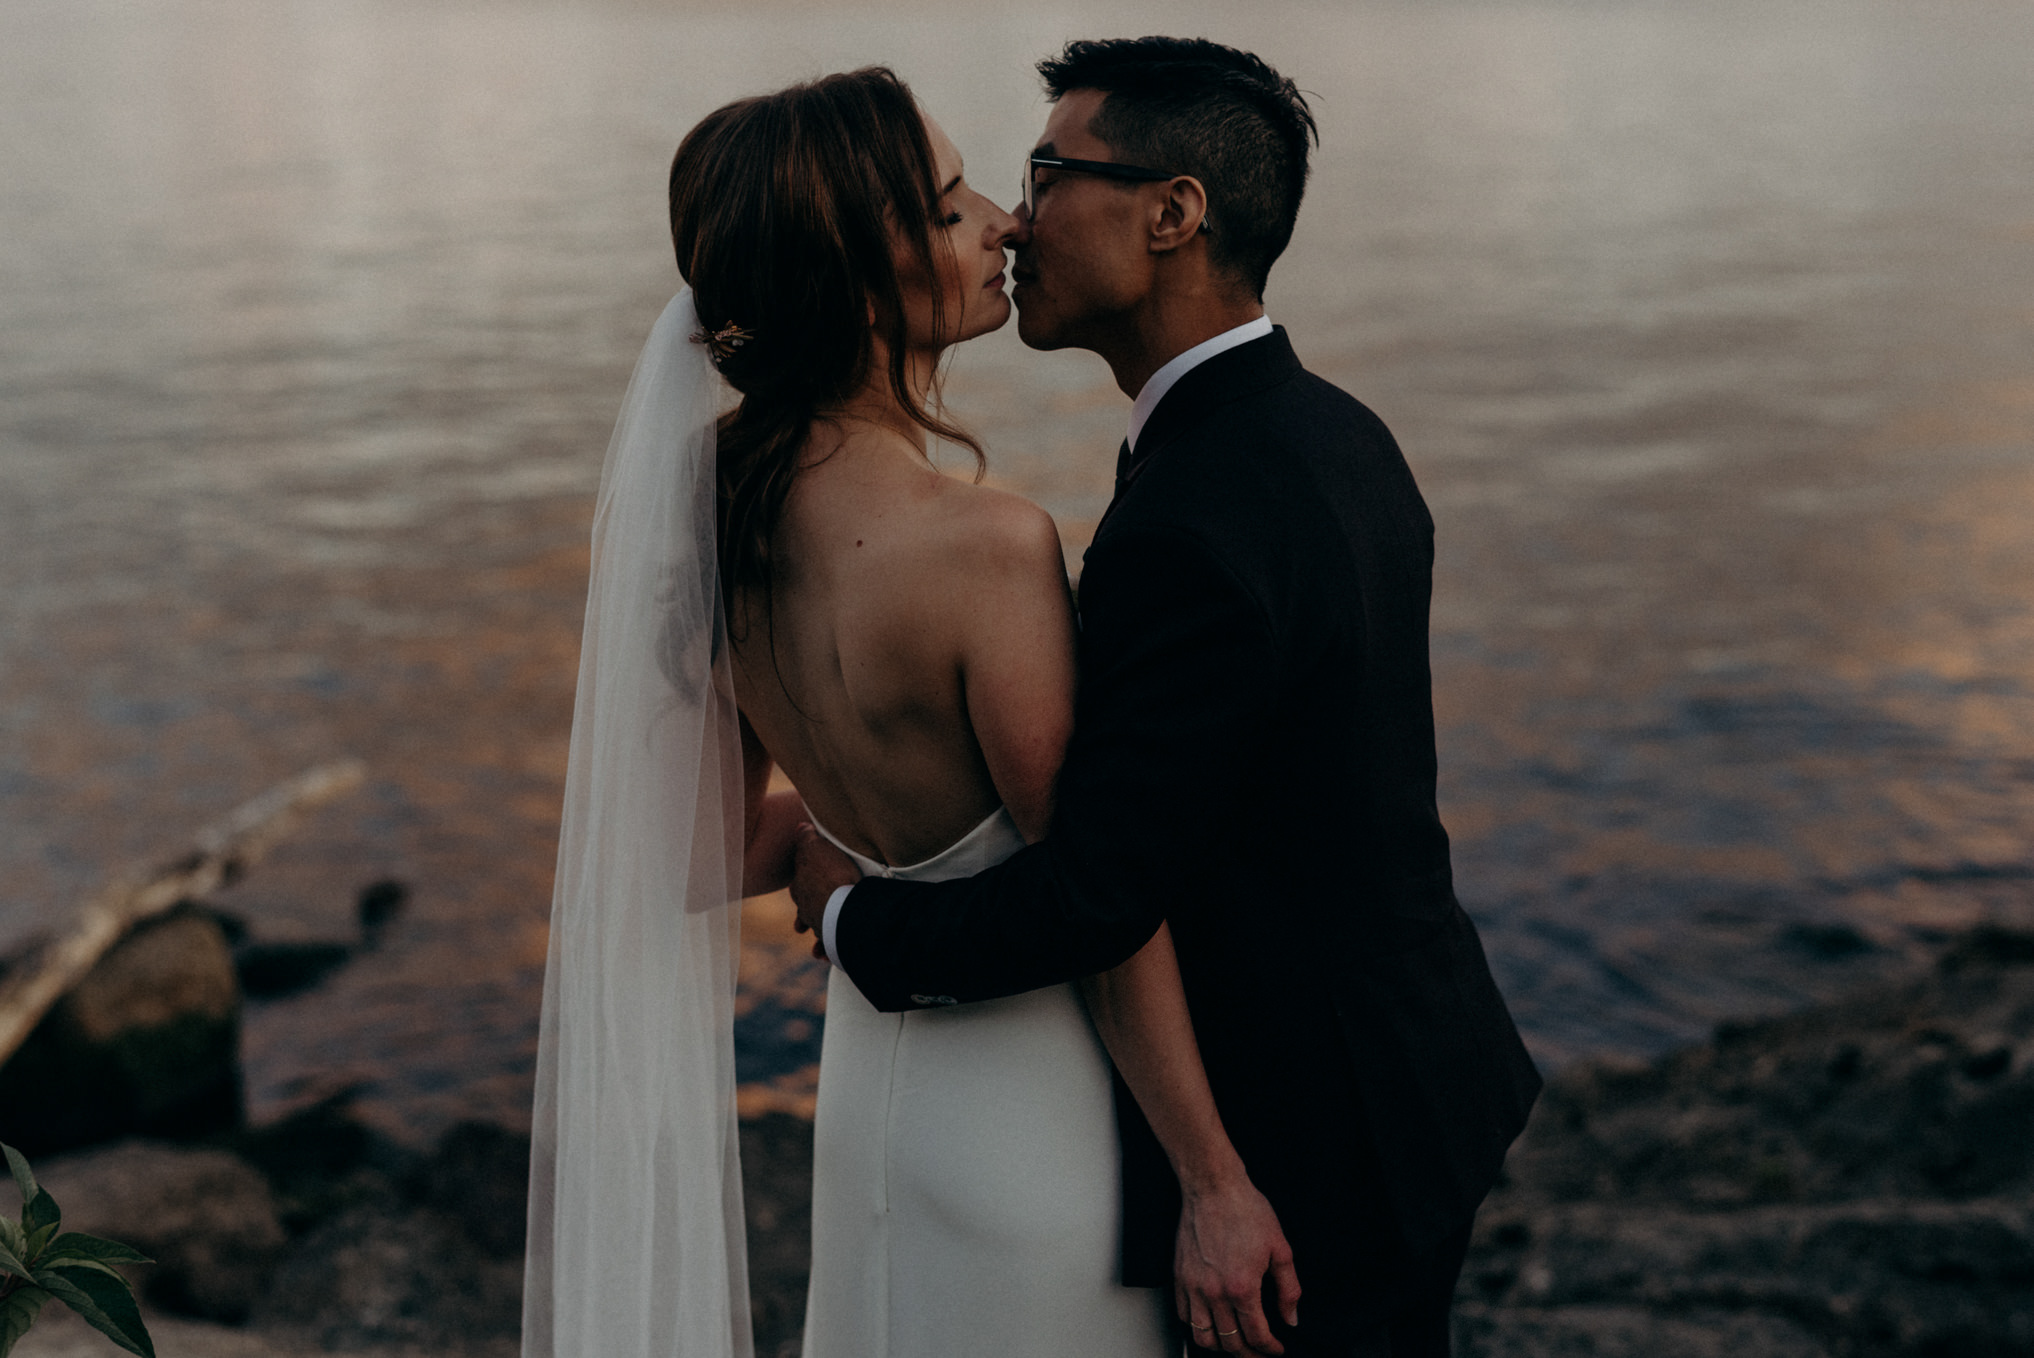 Humber Bay wedding portraits. Bride and groom kissing with sunset reflecting off water behind them